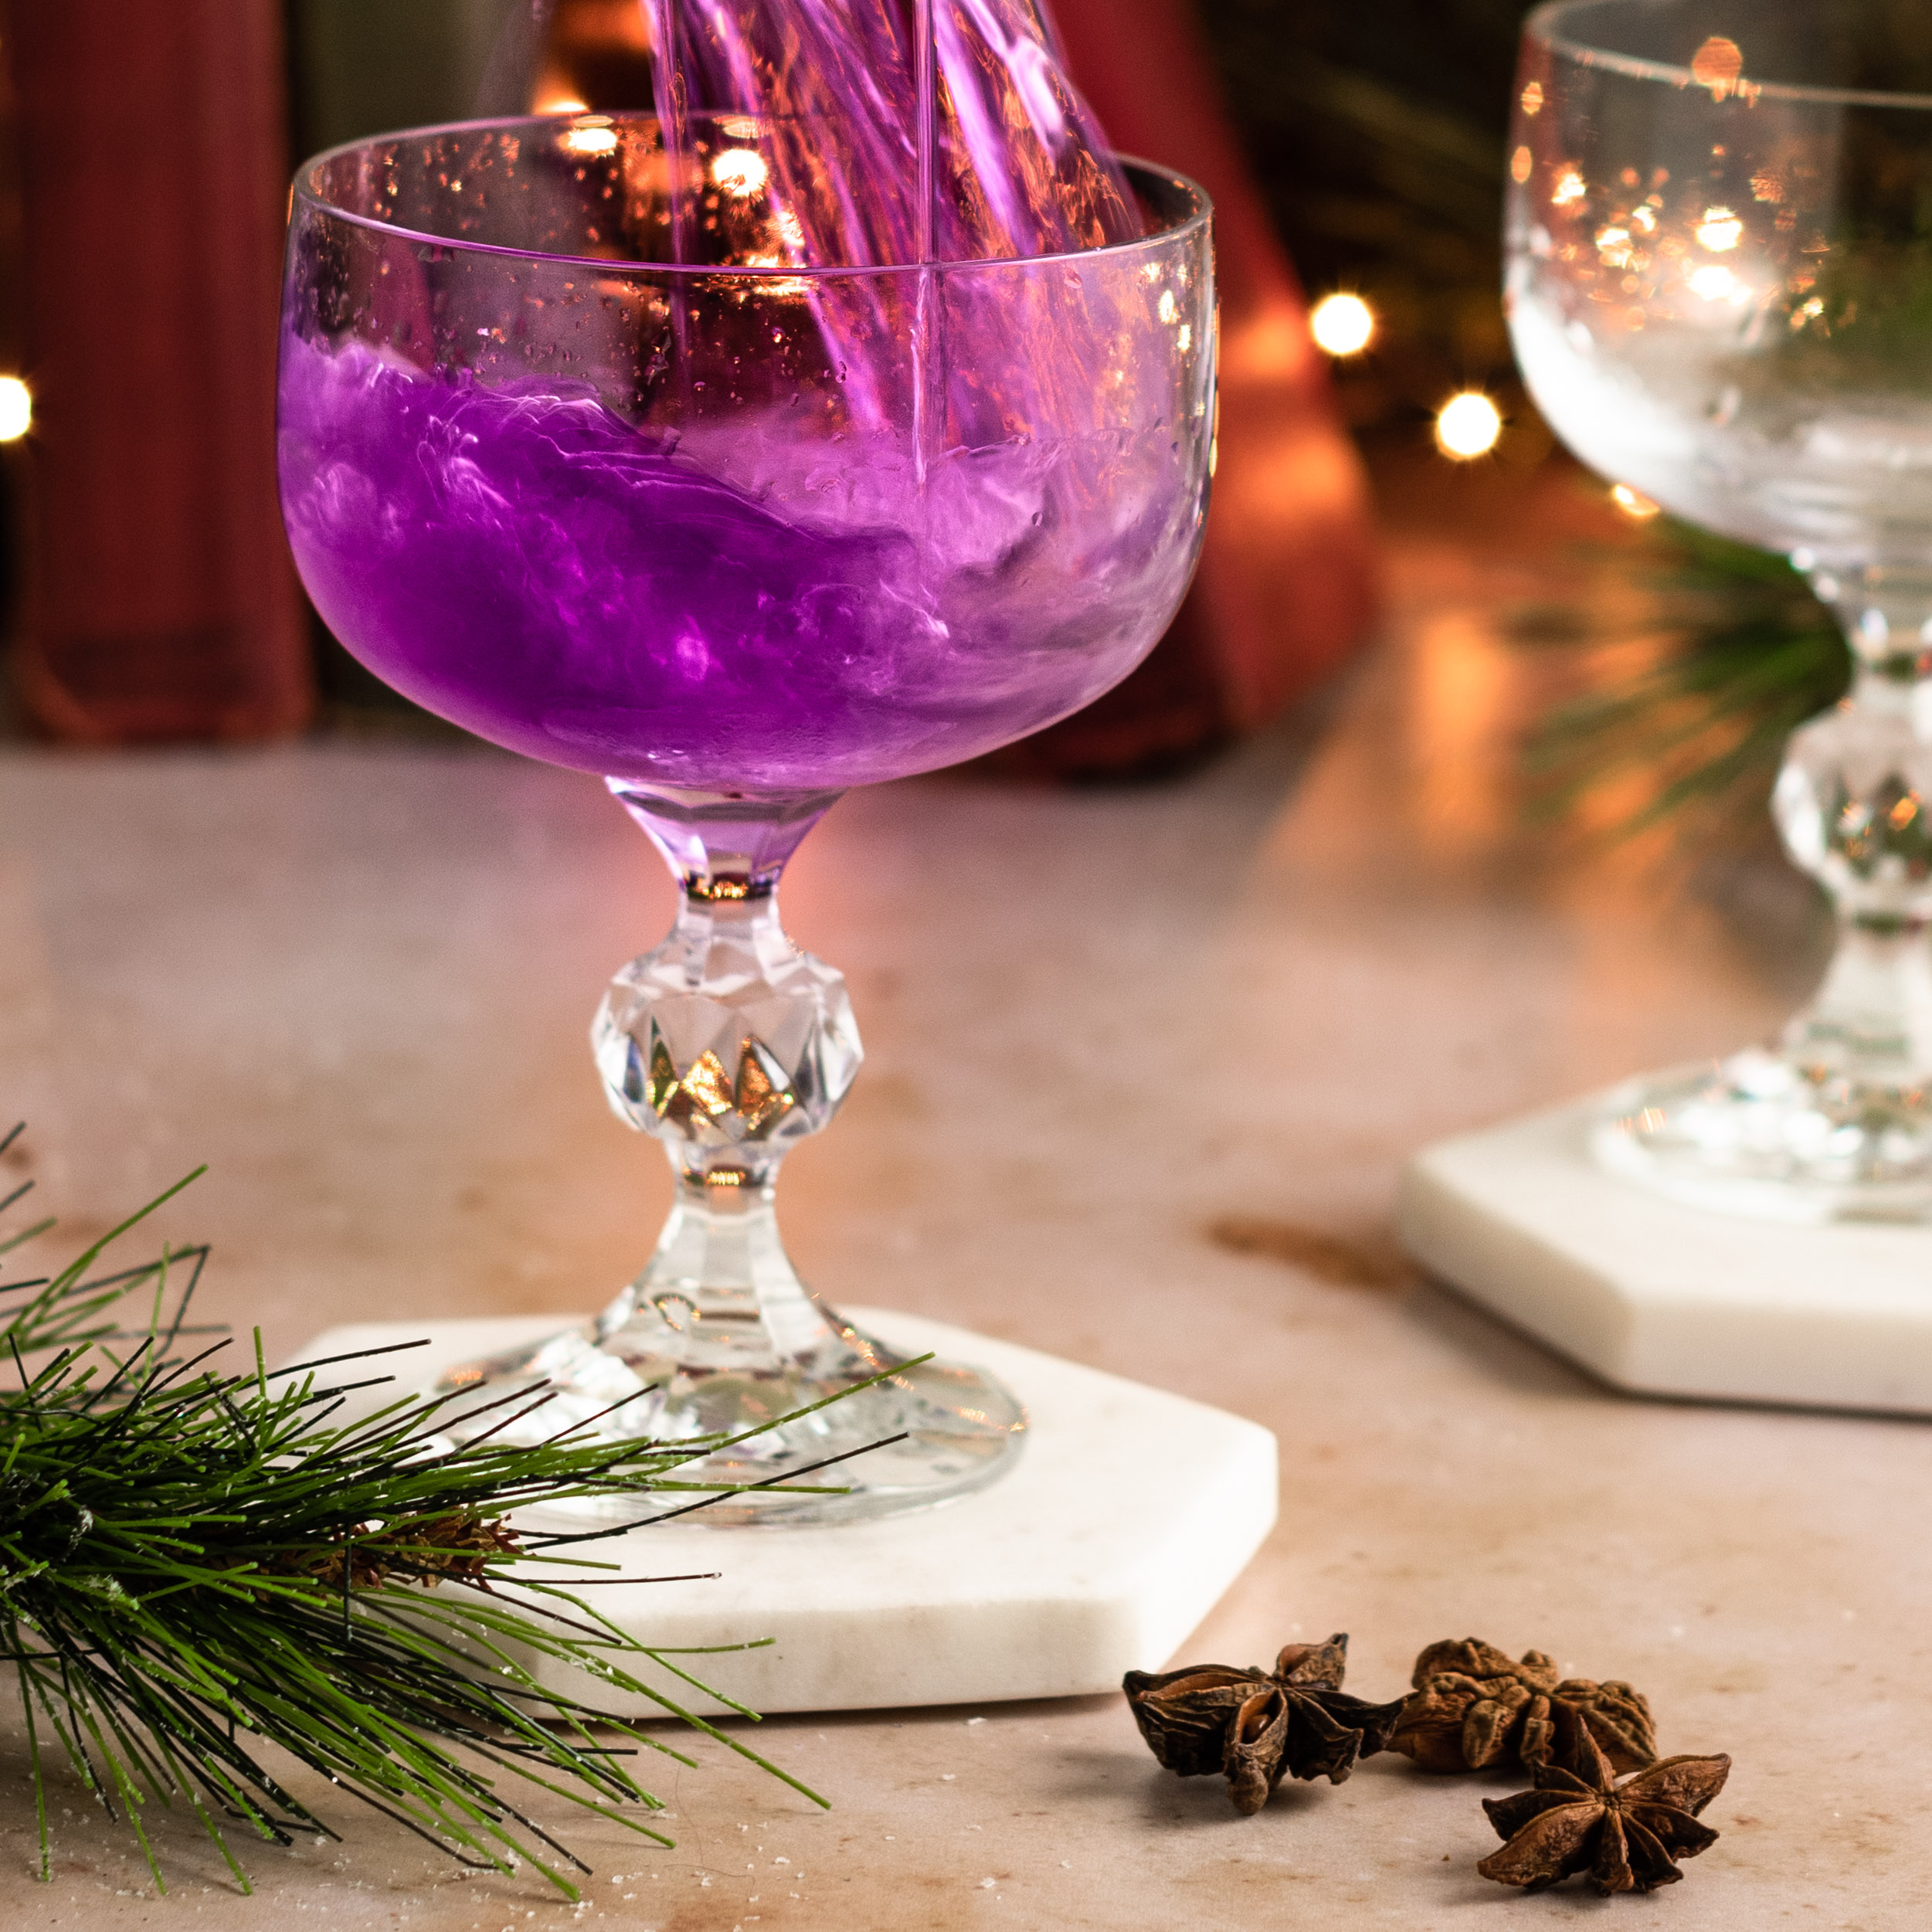 Pouring the purple coktail in to the glass